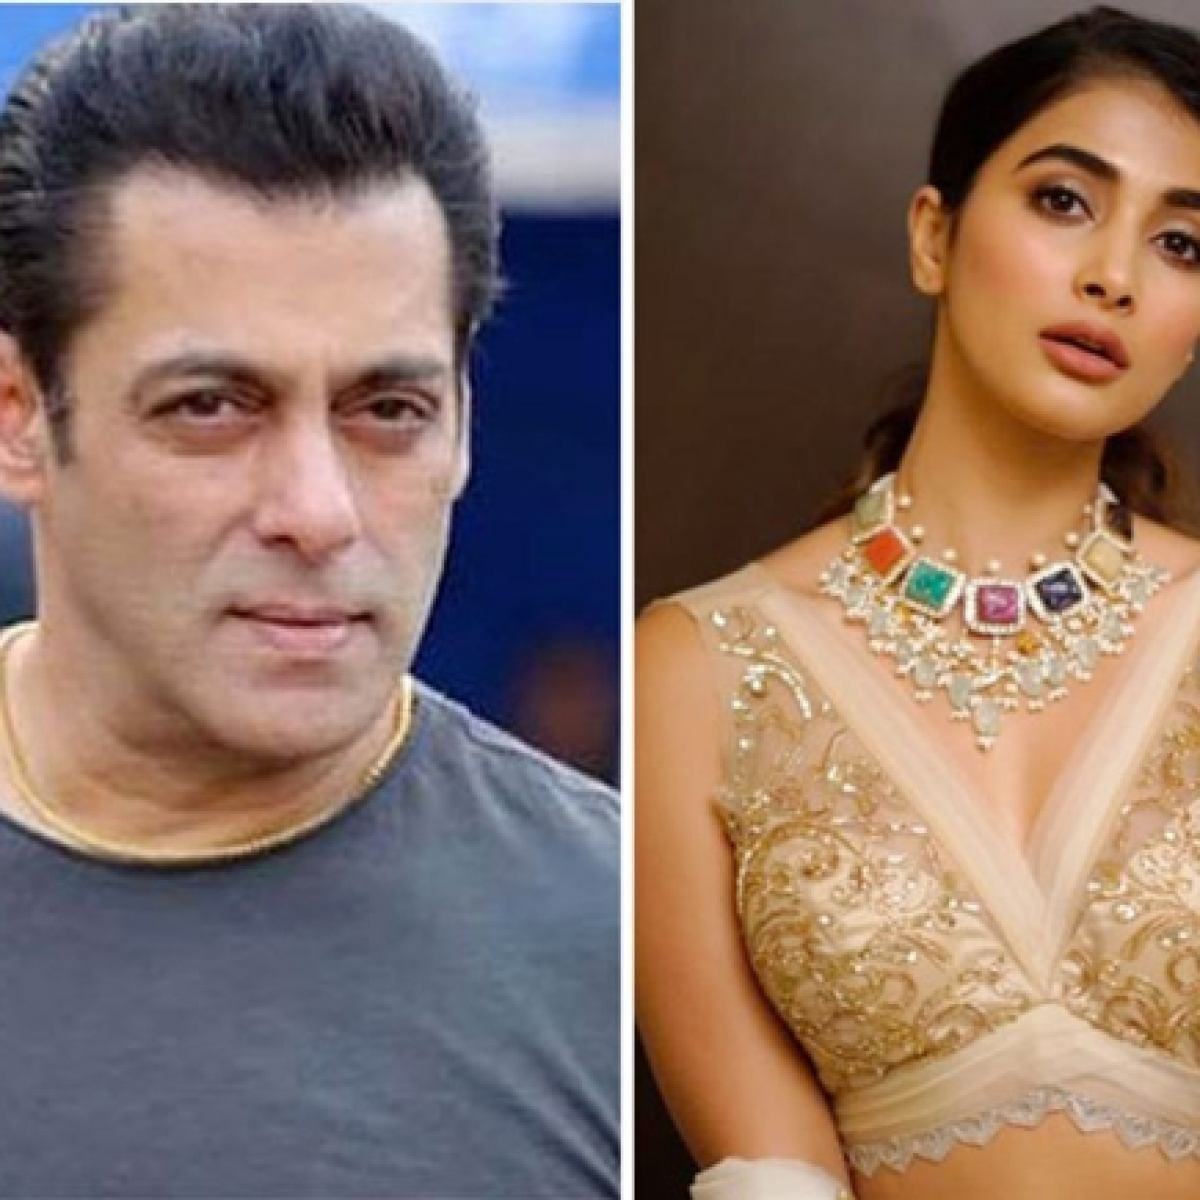 Pooja Hegde roped in as Salman Khan's leading lady for 'Kabhi Eid Kabhi Diwali'